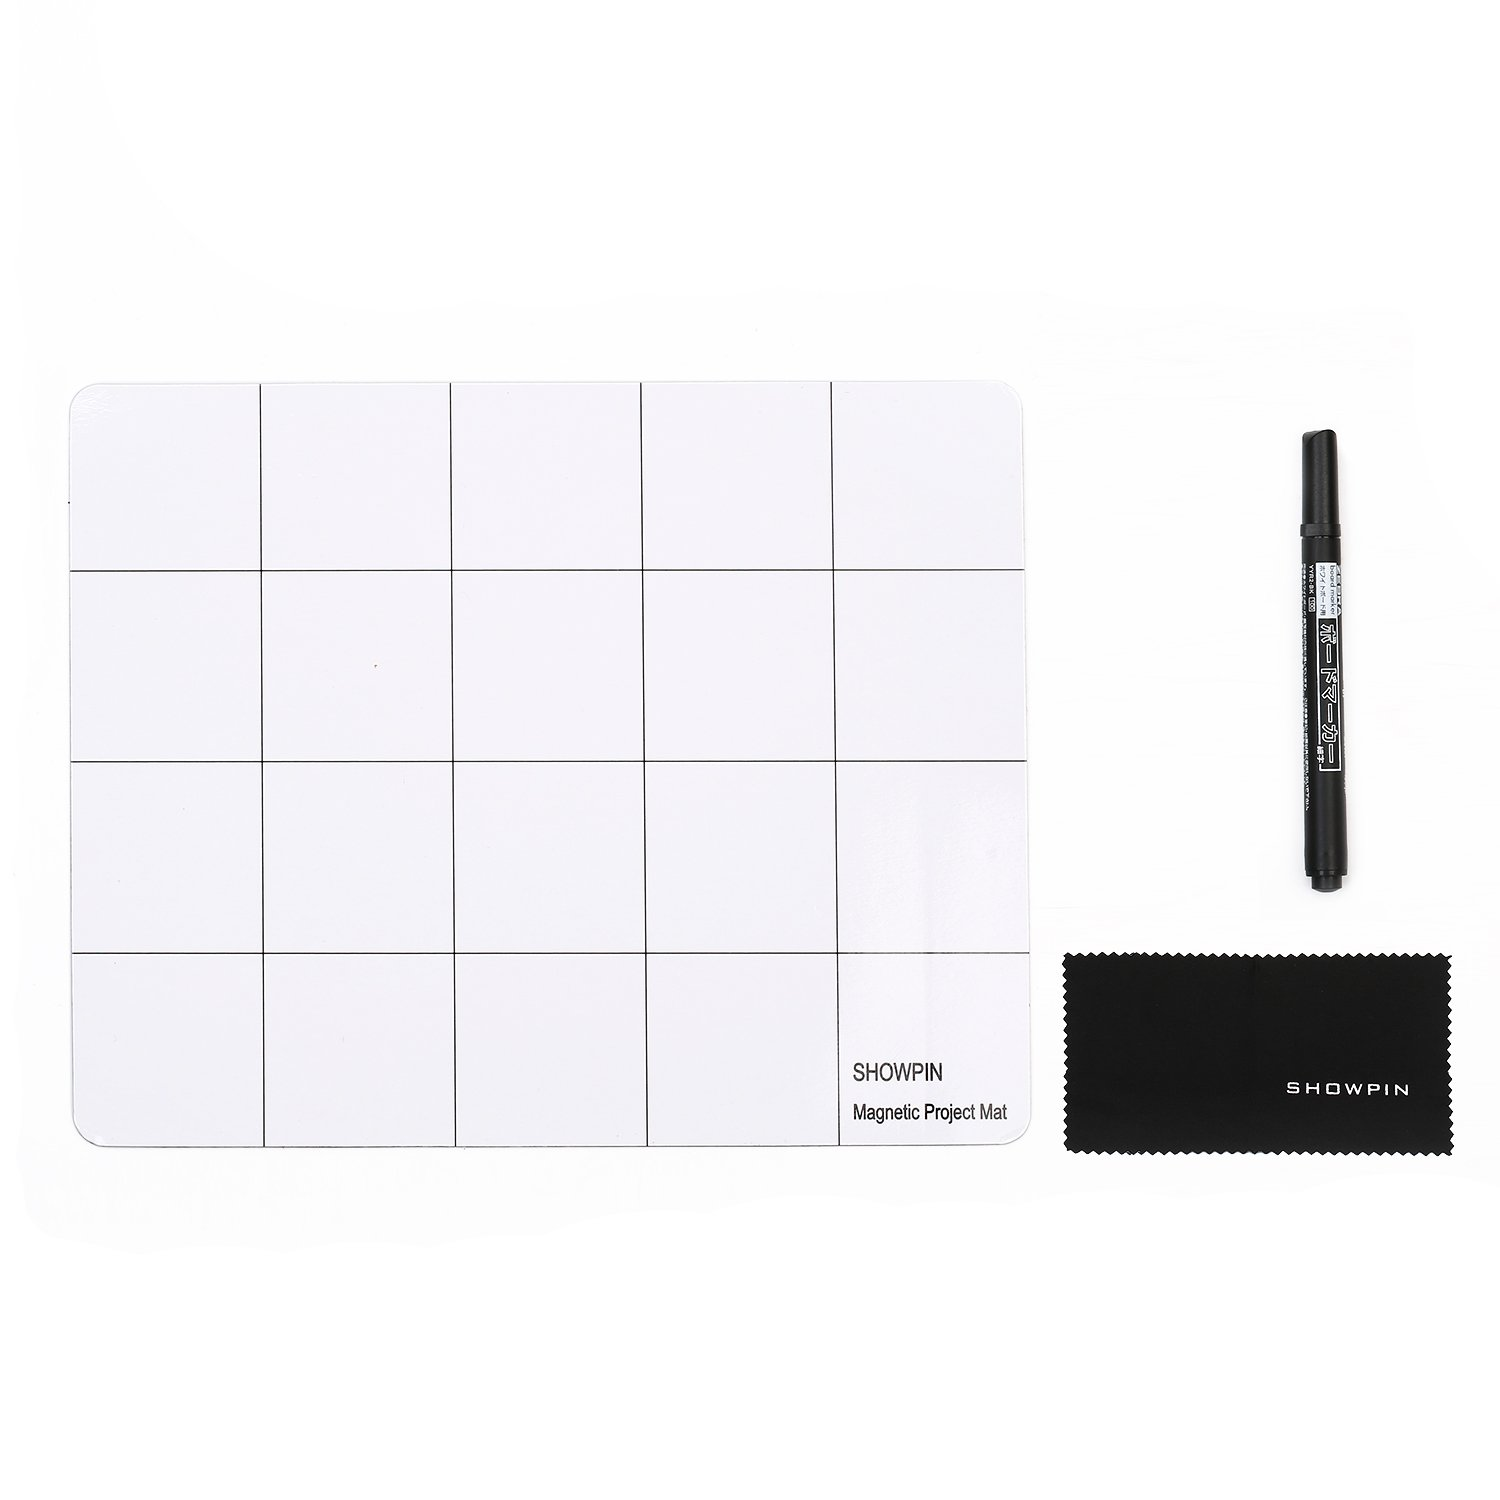 Showpin Magnetic Mat Magnetic Project Mat Prevent Small Electronics Losing Rewritable Work Surface Mat Pad (9.8 x 7.9 inches)